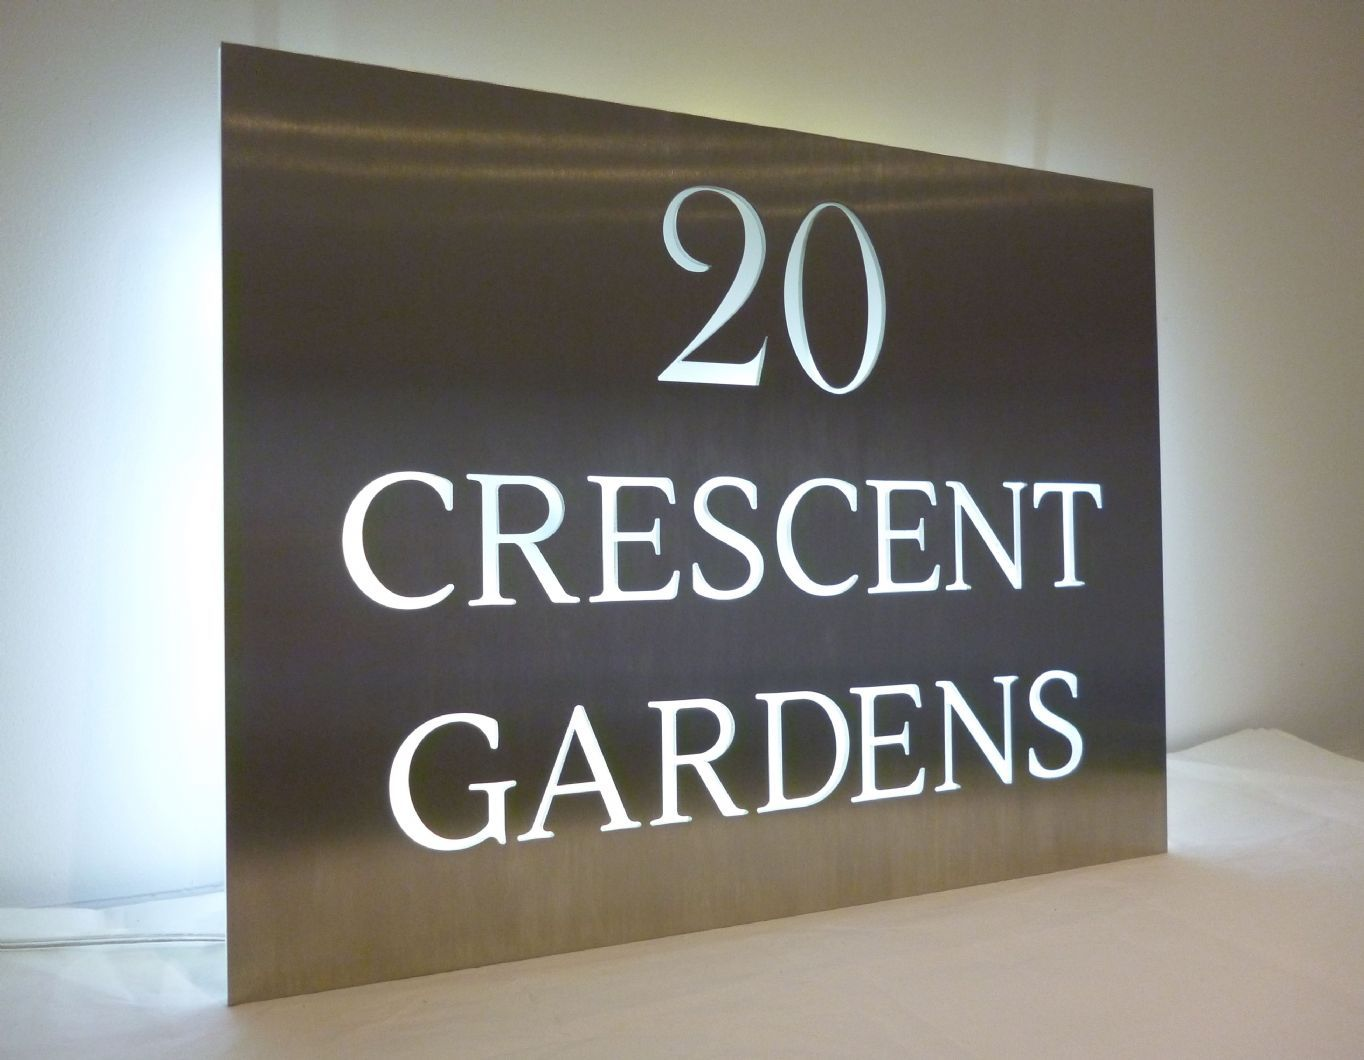 Our stainless steel house name plaques look stunning at night with back lit leds these are unique bespoke items laser cut from grade also giju joseph gijujoseph on pinterest rh